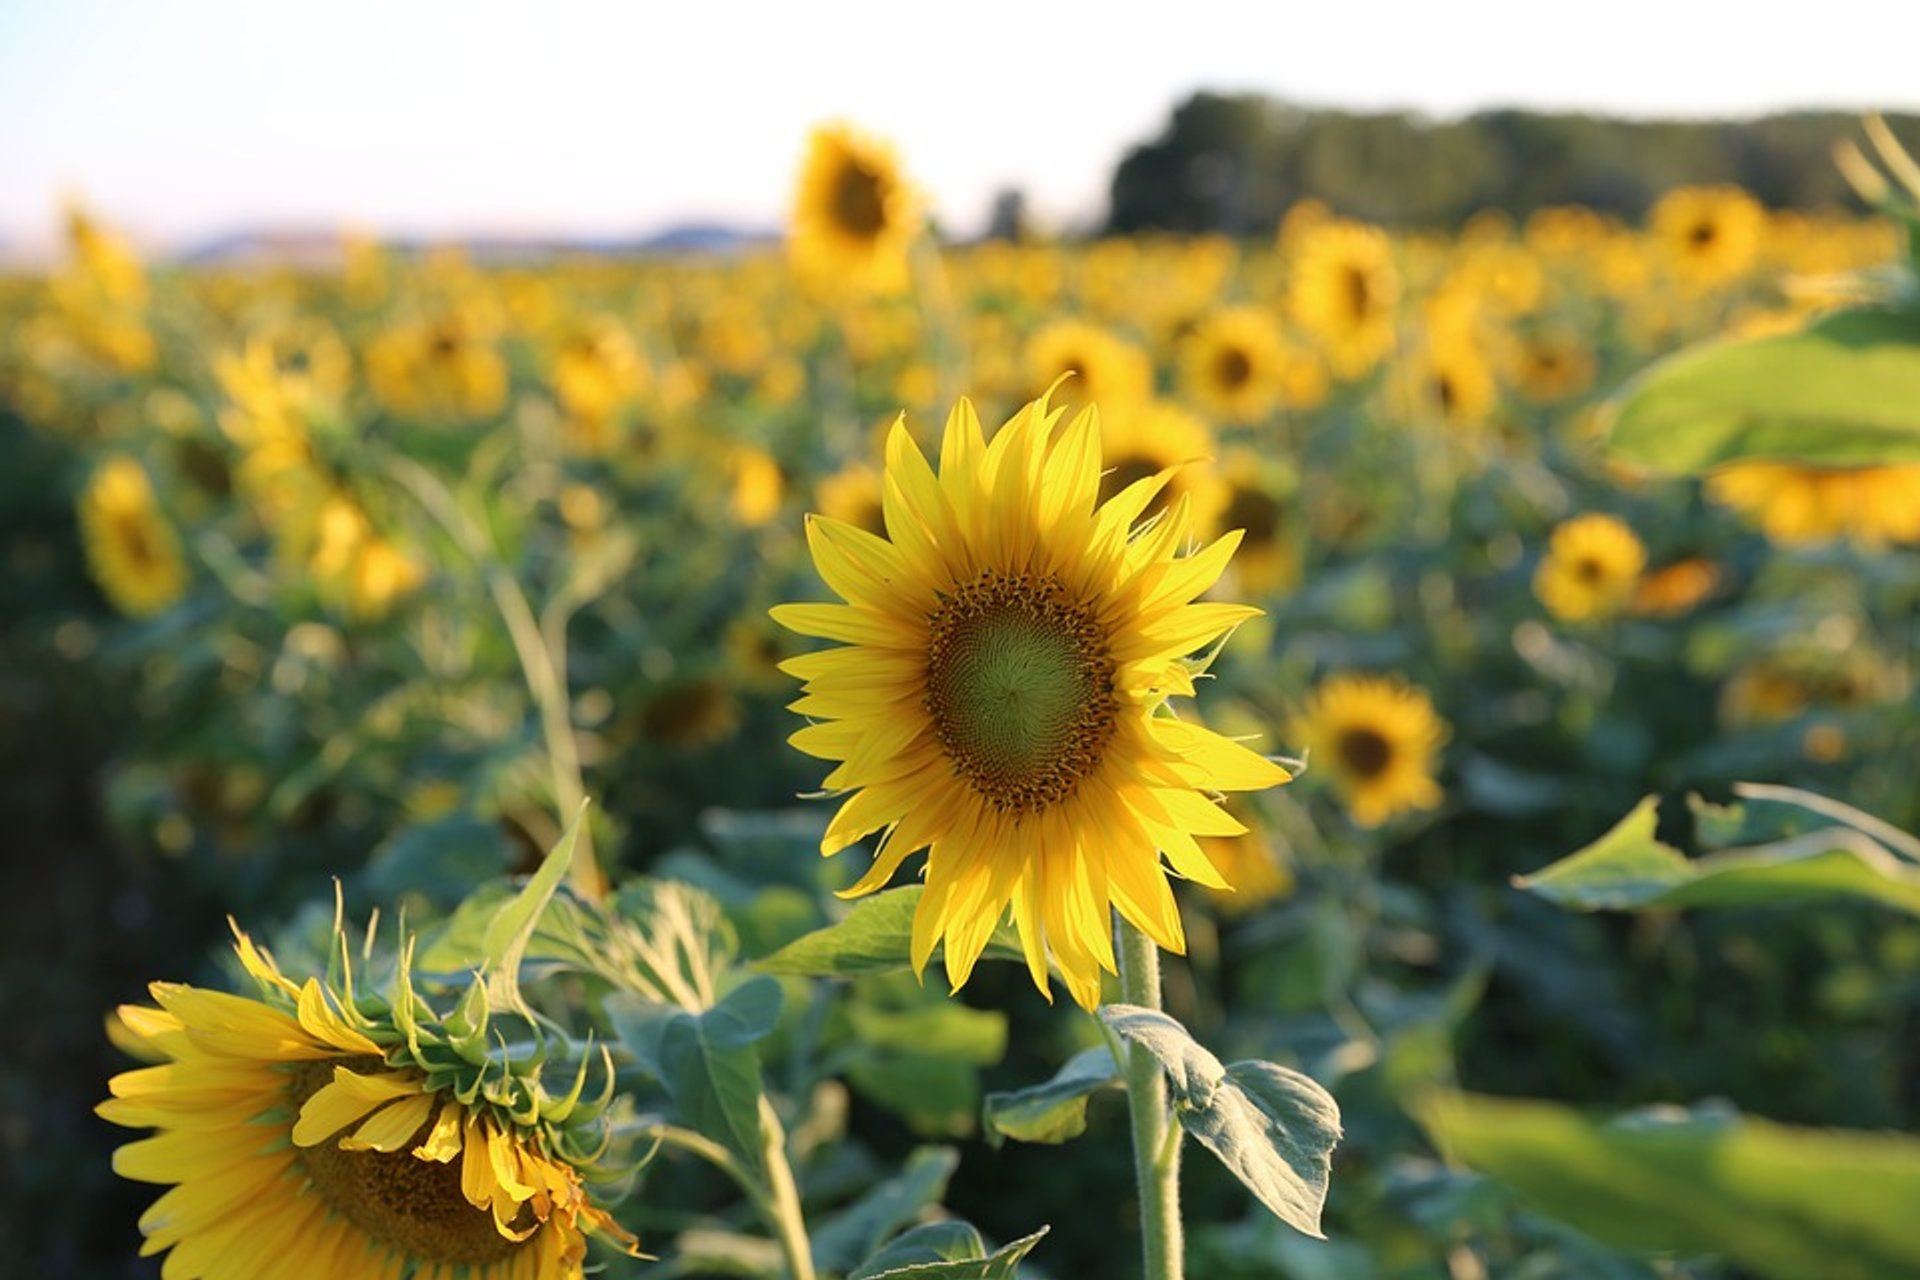 Sunflowers in Bloom in Provence & French Riviera 2020 - Best Time